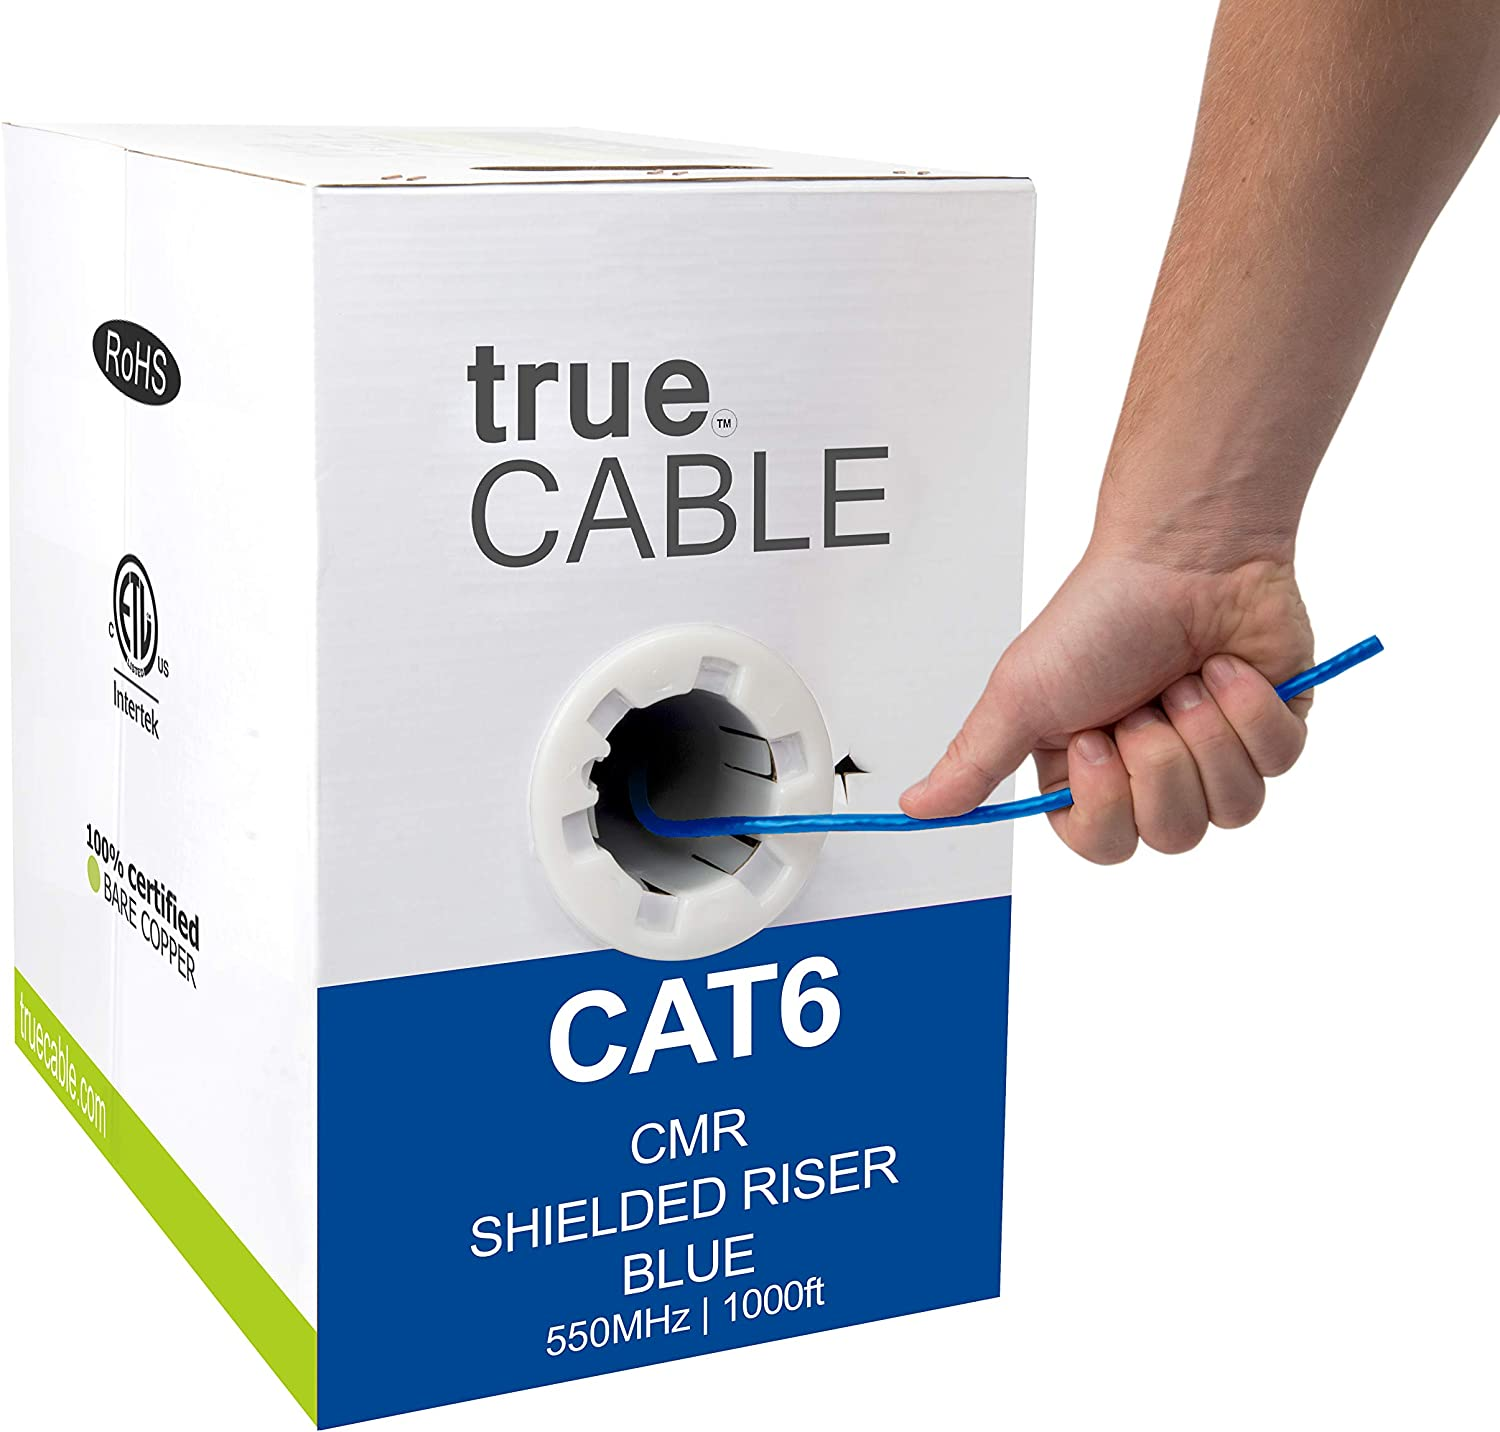 Black 550MHz Bulk Ethernet Cable Shielded FTP 23AWG Solid Bare Copper Waterproof 1000ft Direct Burial Rated CMX trueCABLE Cat6 Outdoor ETL Listed